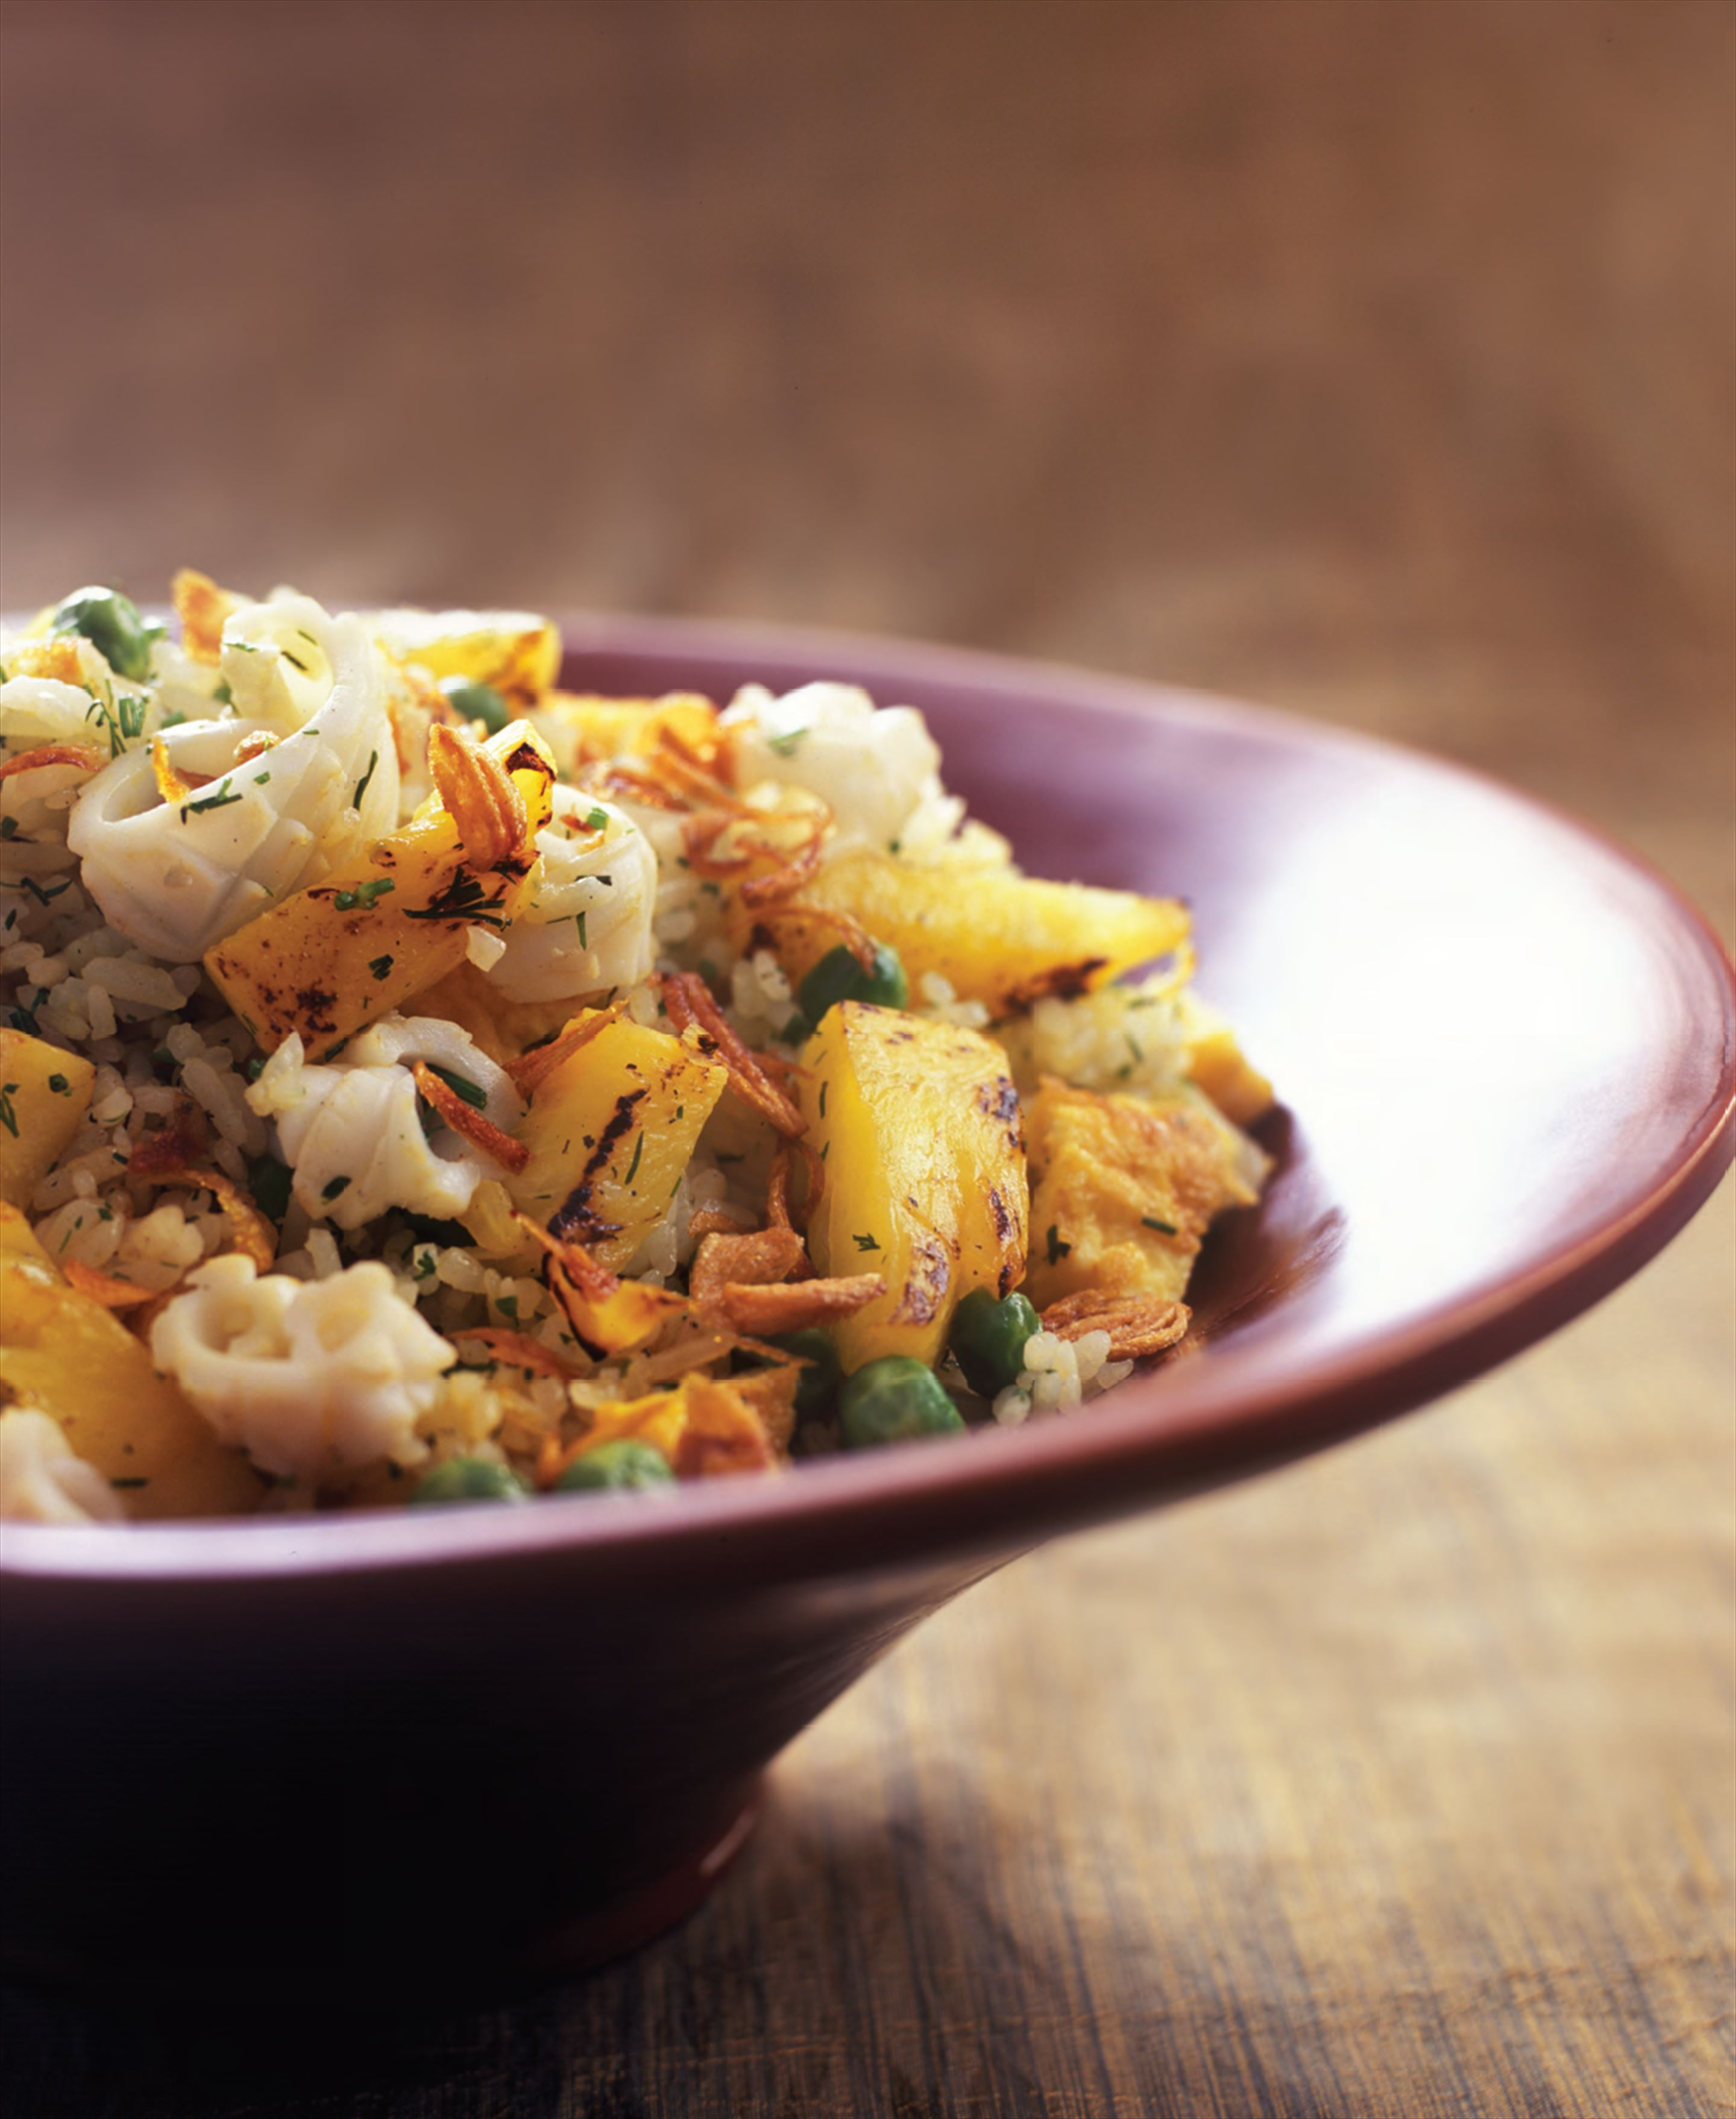 Fried rice with cuttlefish, pineapple and dill